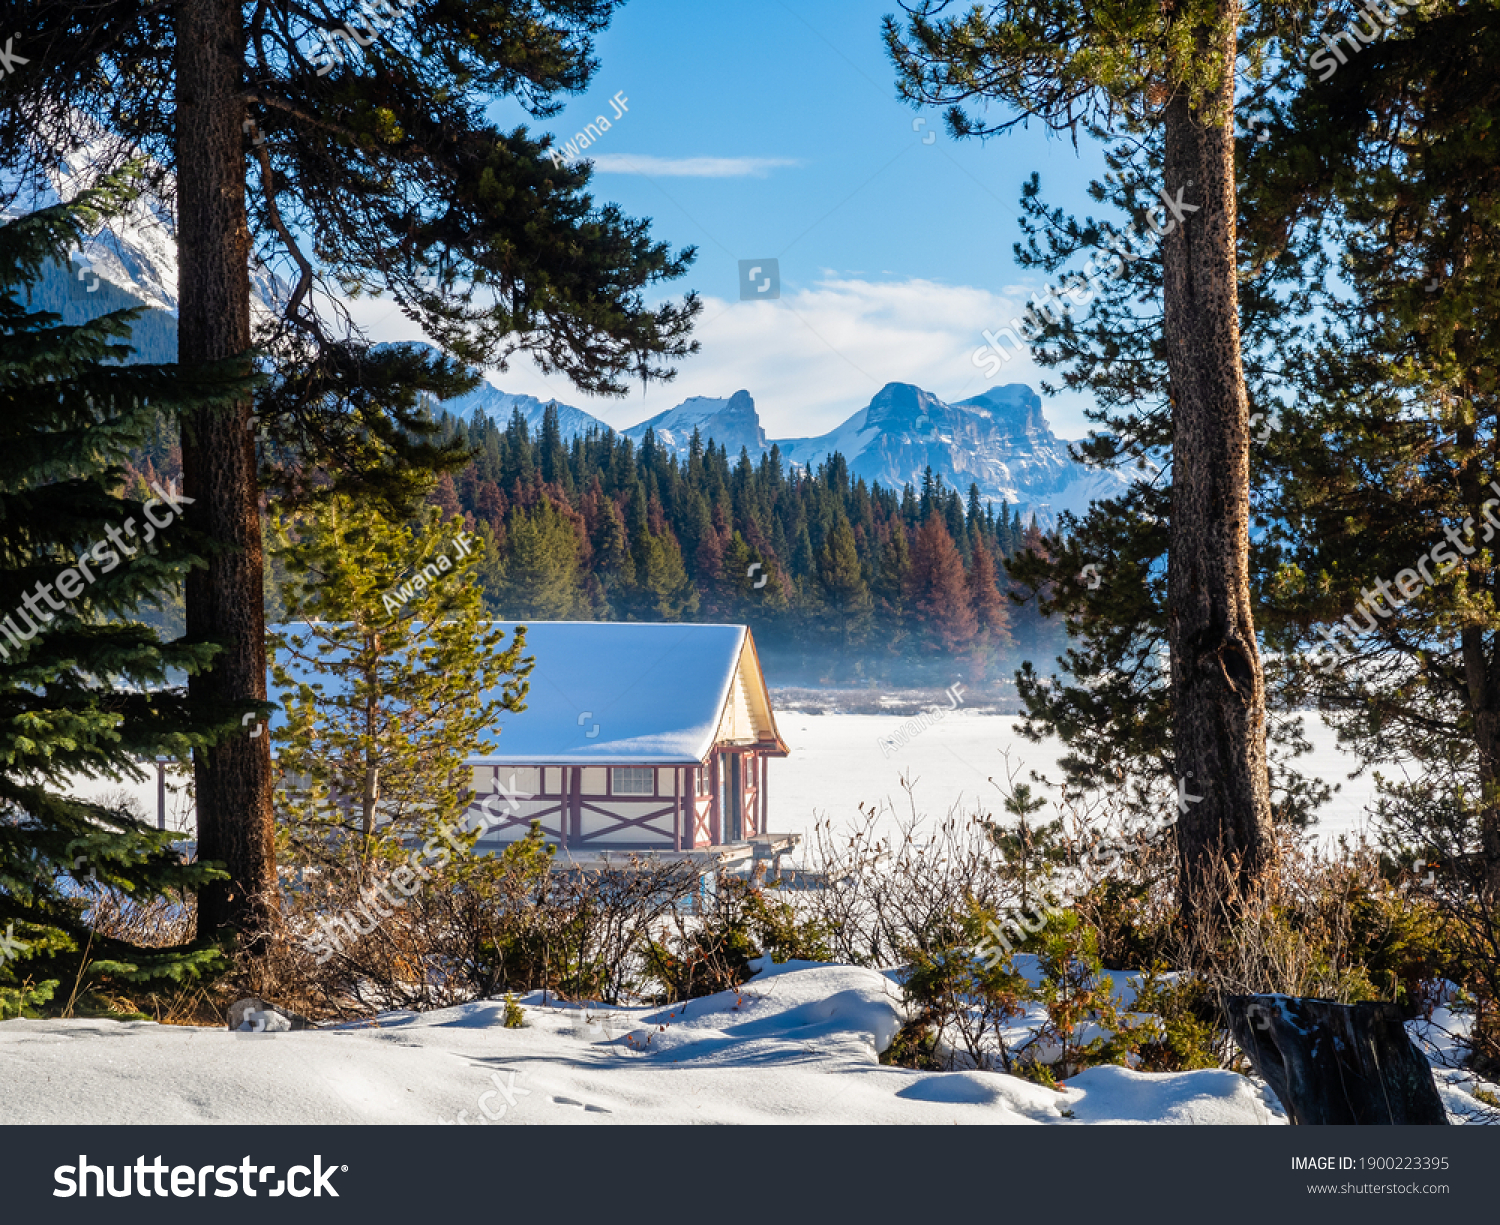 stock-photo-beautiful-winter-view-of-mal